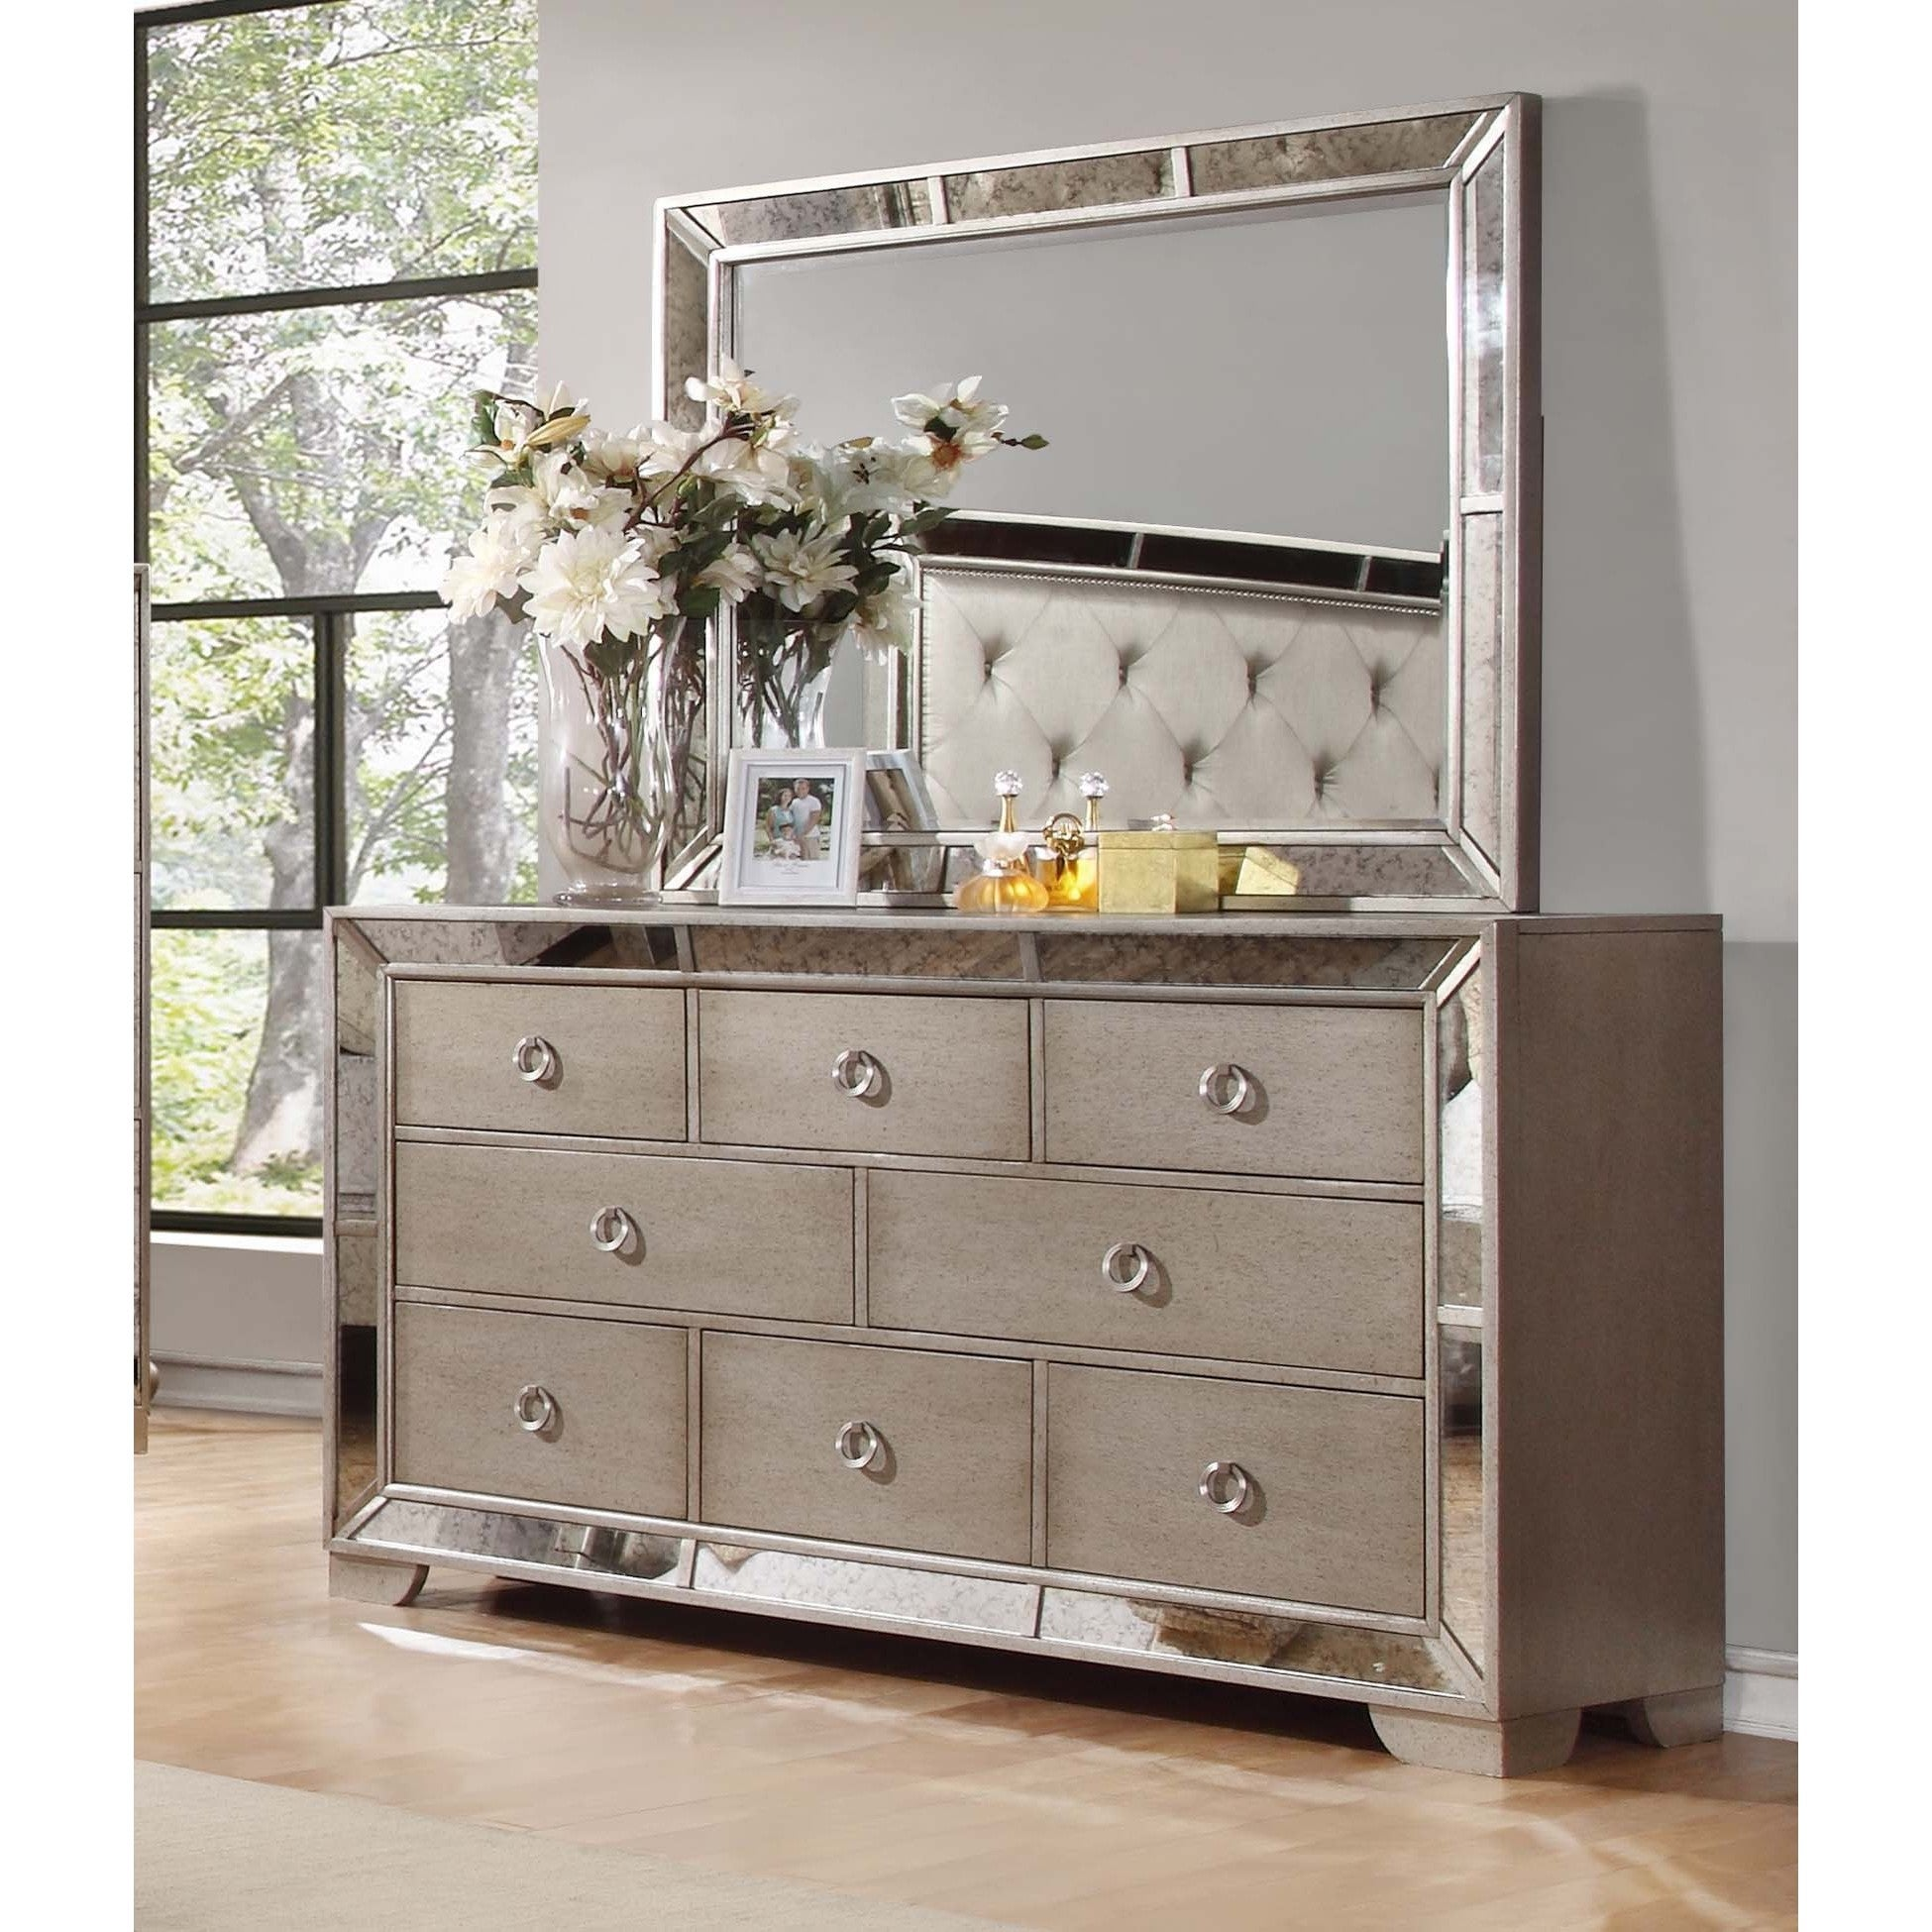 Shop best master furniture silver bronze dresser and mirror free shipping today overstock com 12376543